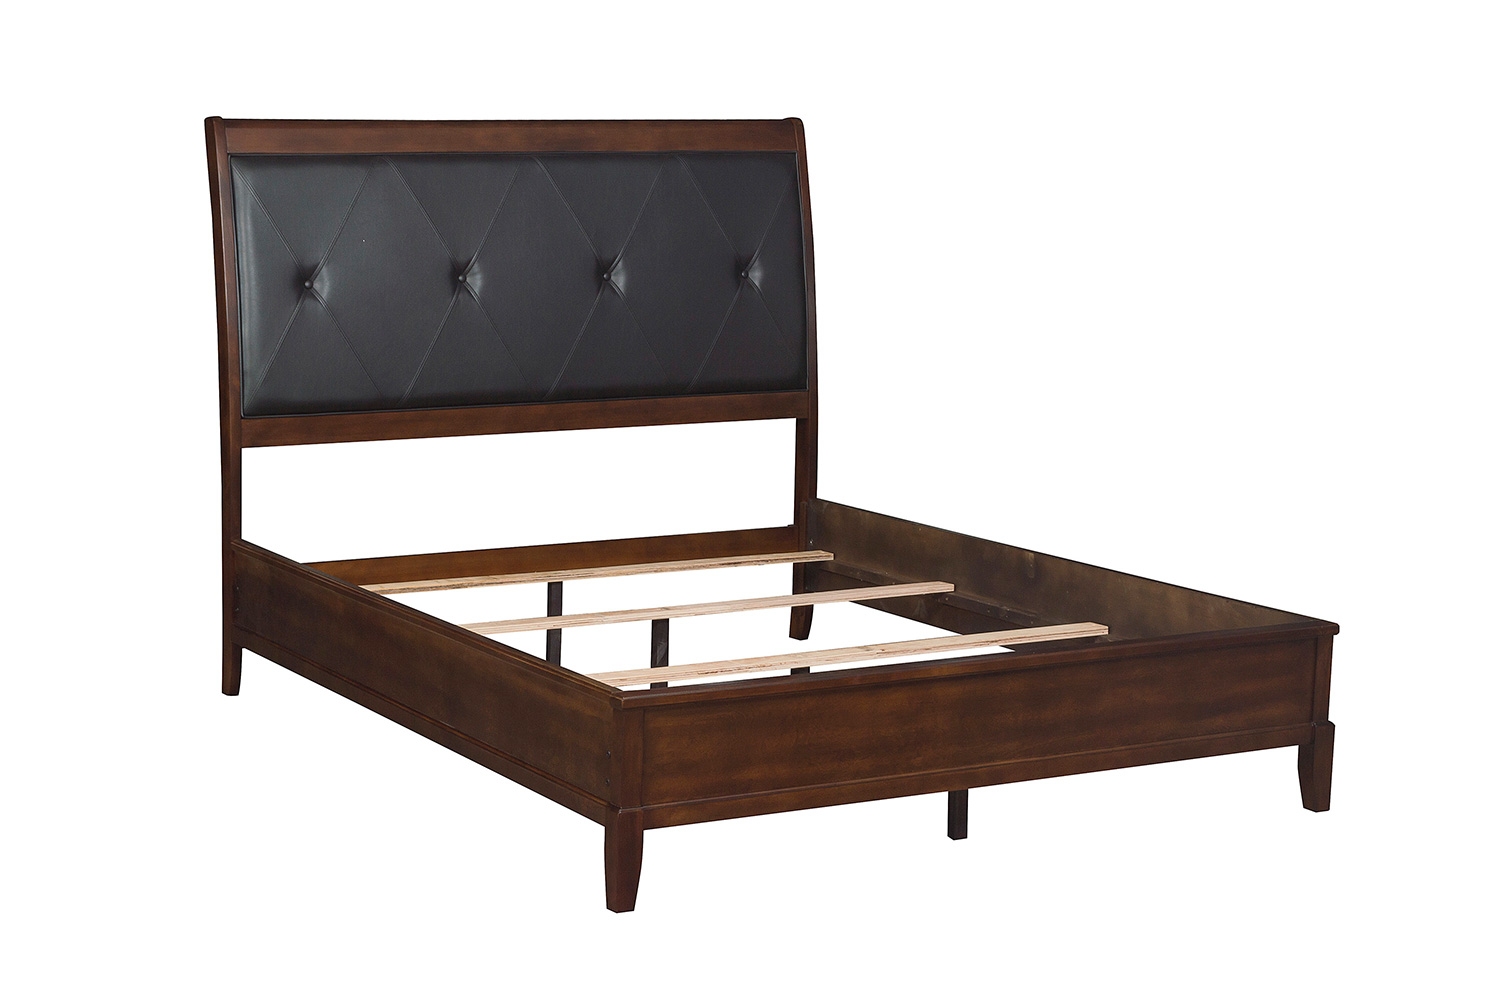 Homelegance Cotterill Bed - Cherry over Birch Veneer